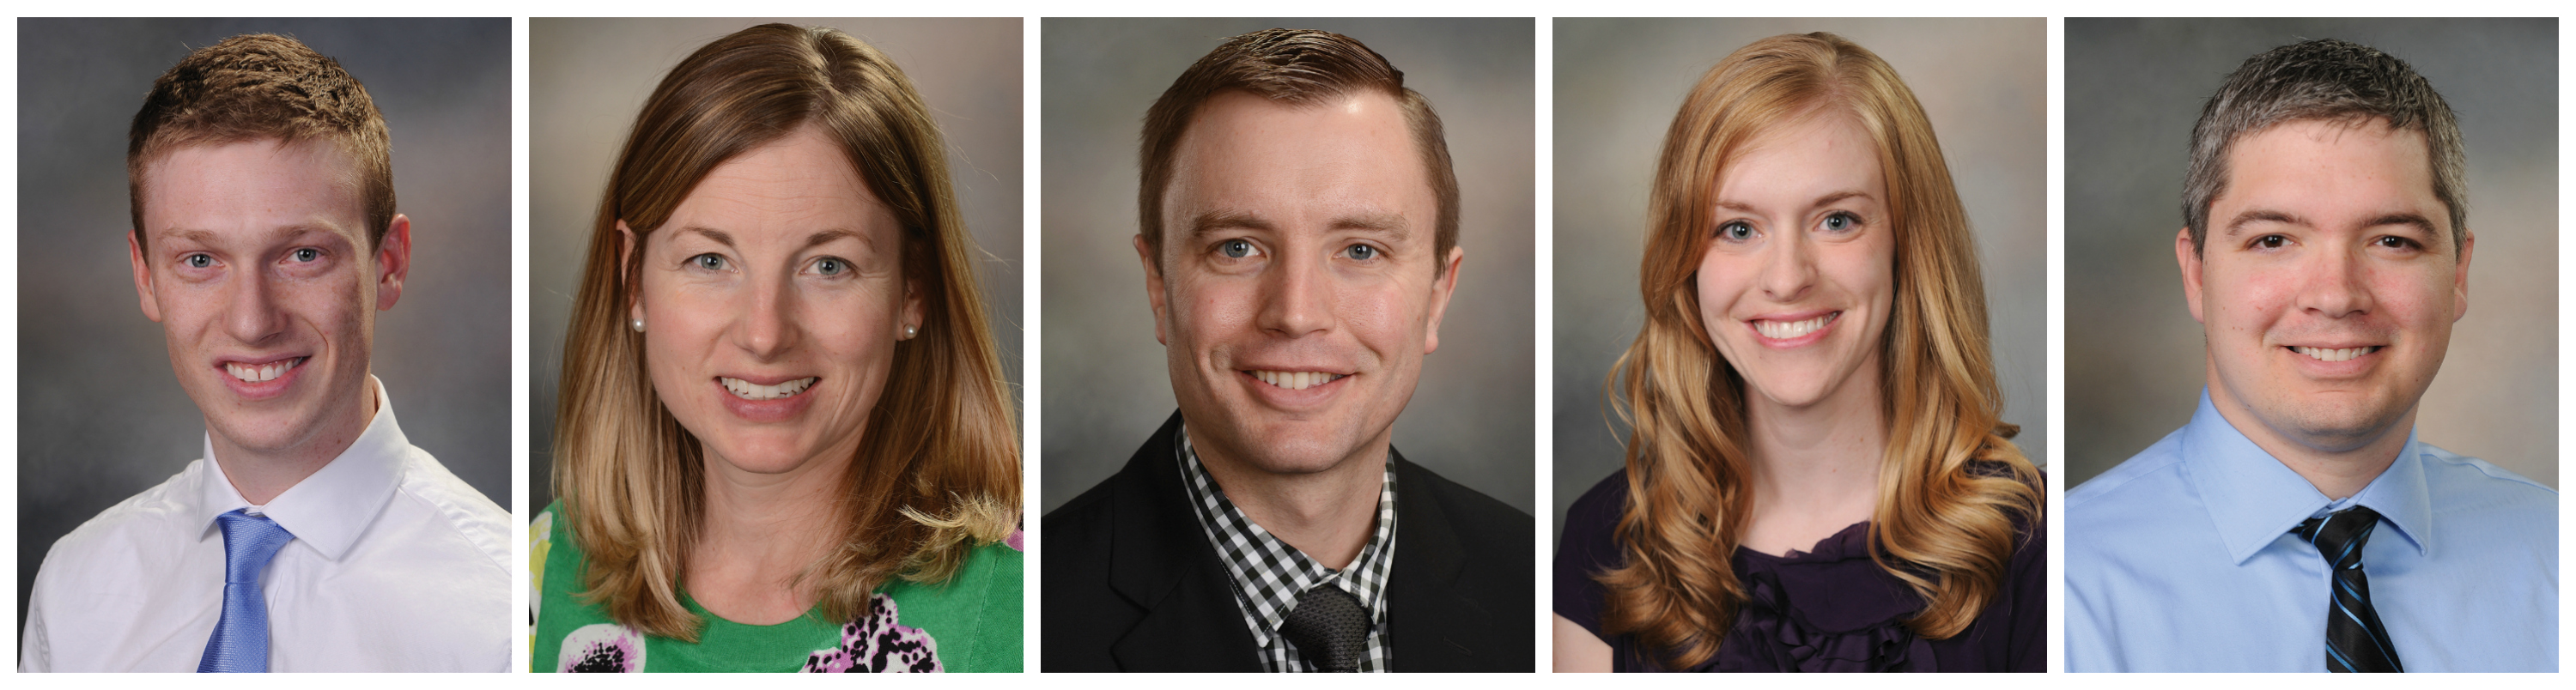 Five Physicians Join McFarland Carroll | News Releases | McFarland